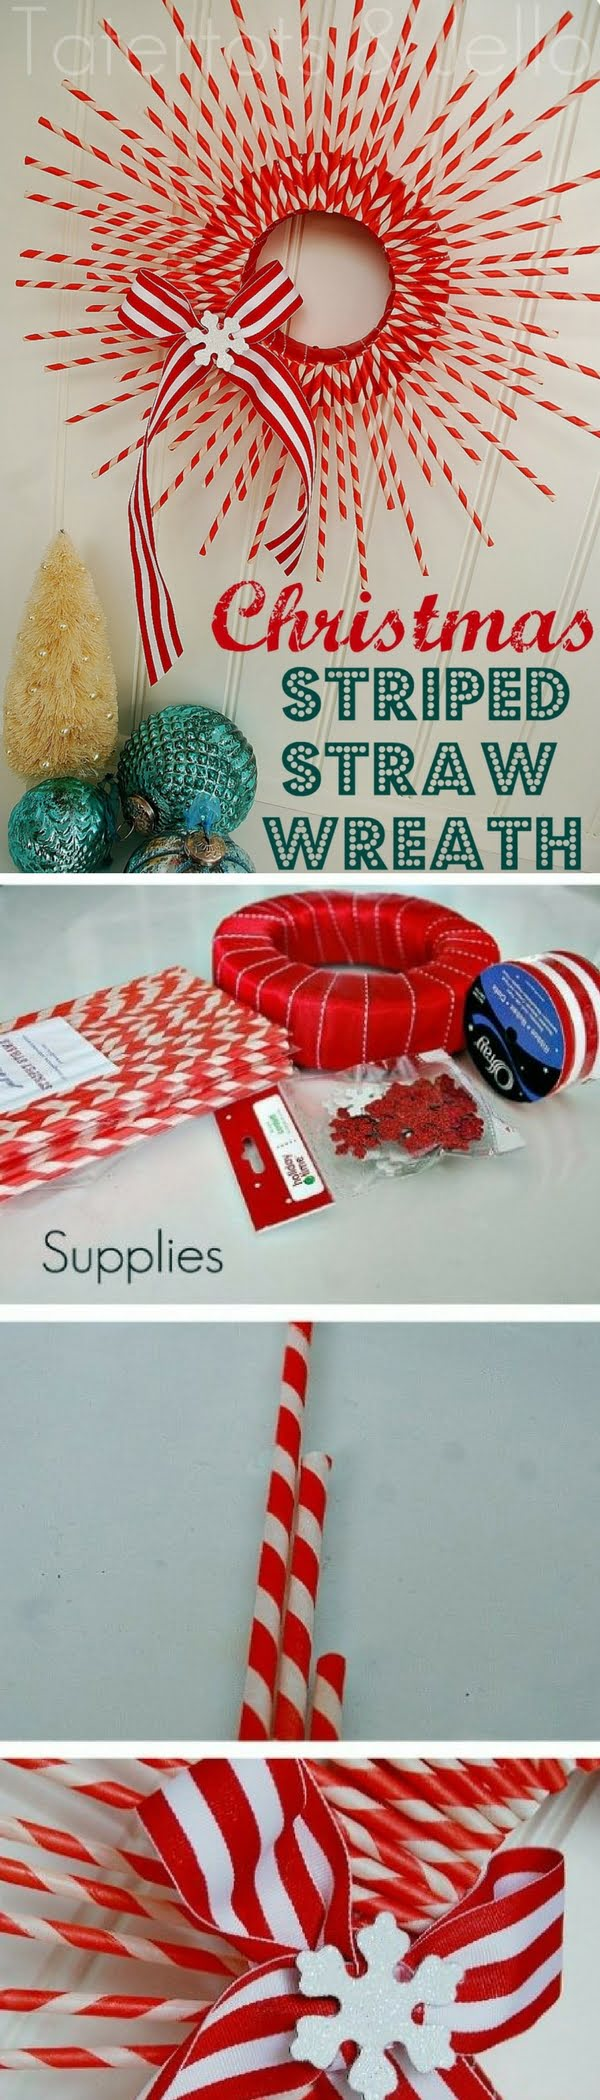 Check out this easy idea on how to make a #DIY striped straw #Christmas wreath #homedecor #crafts #project